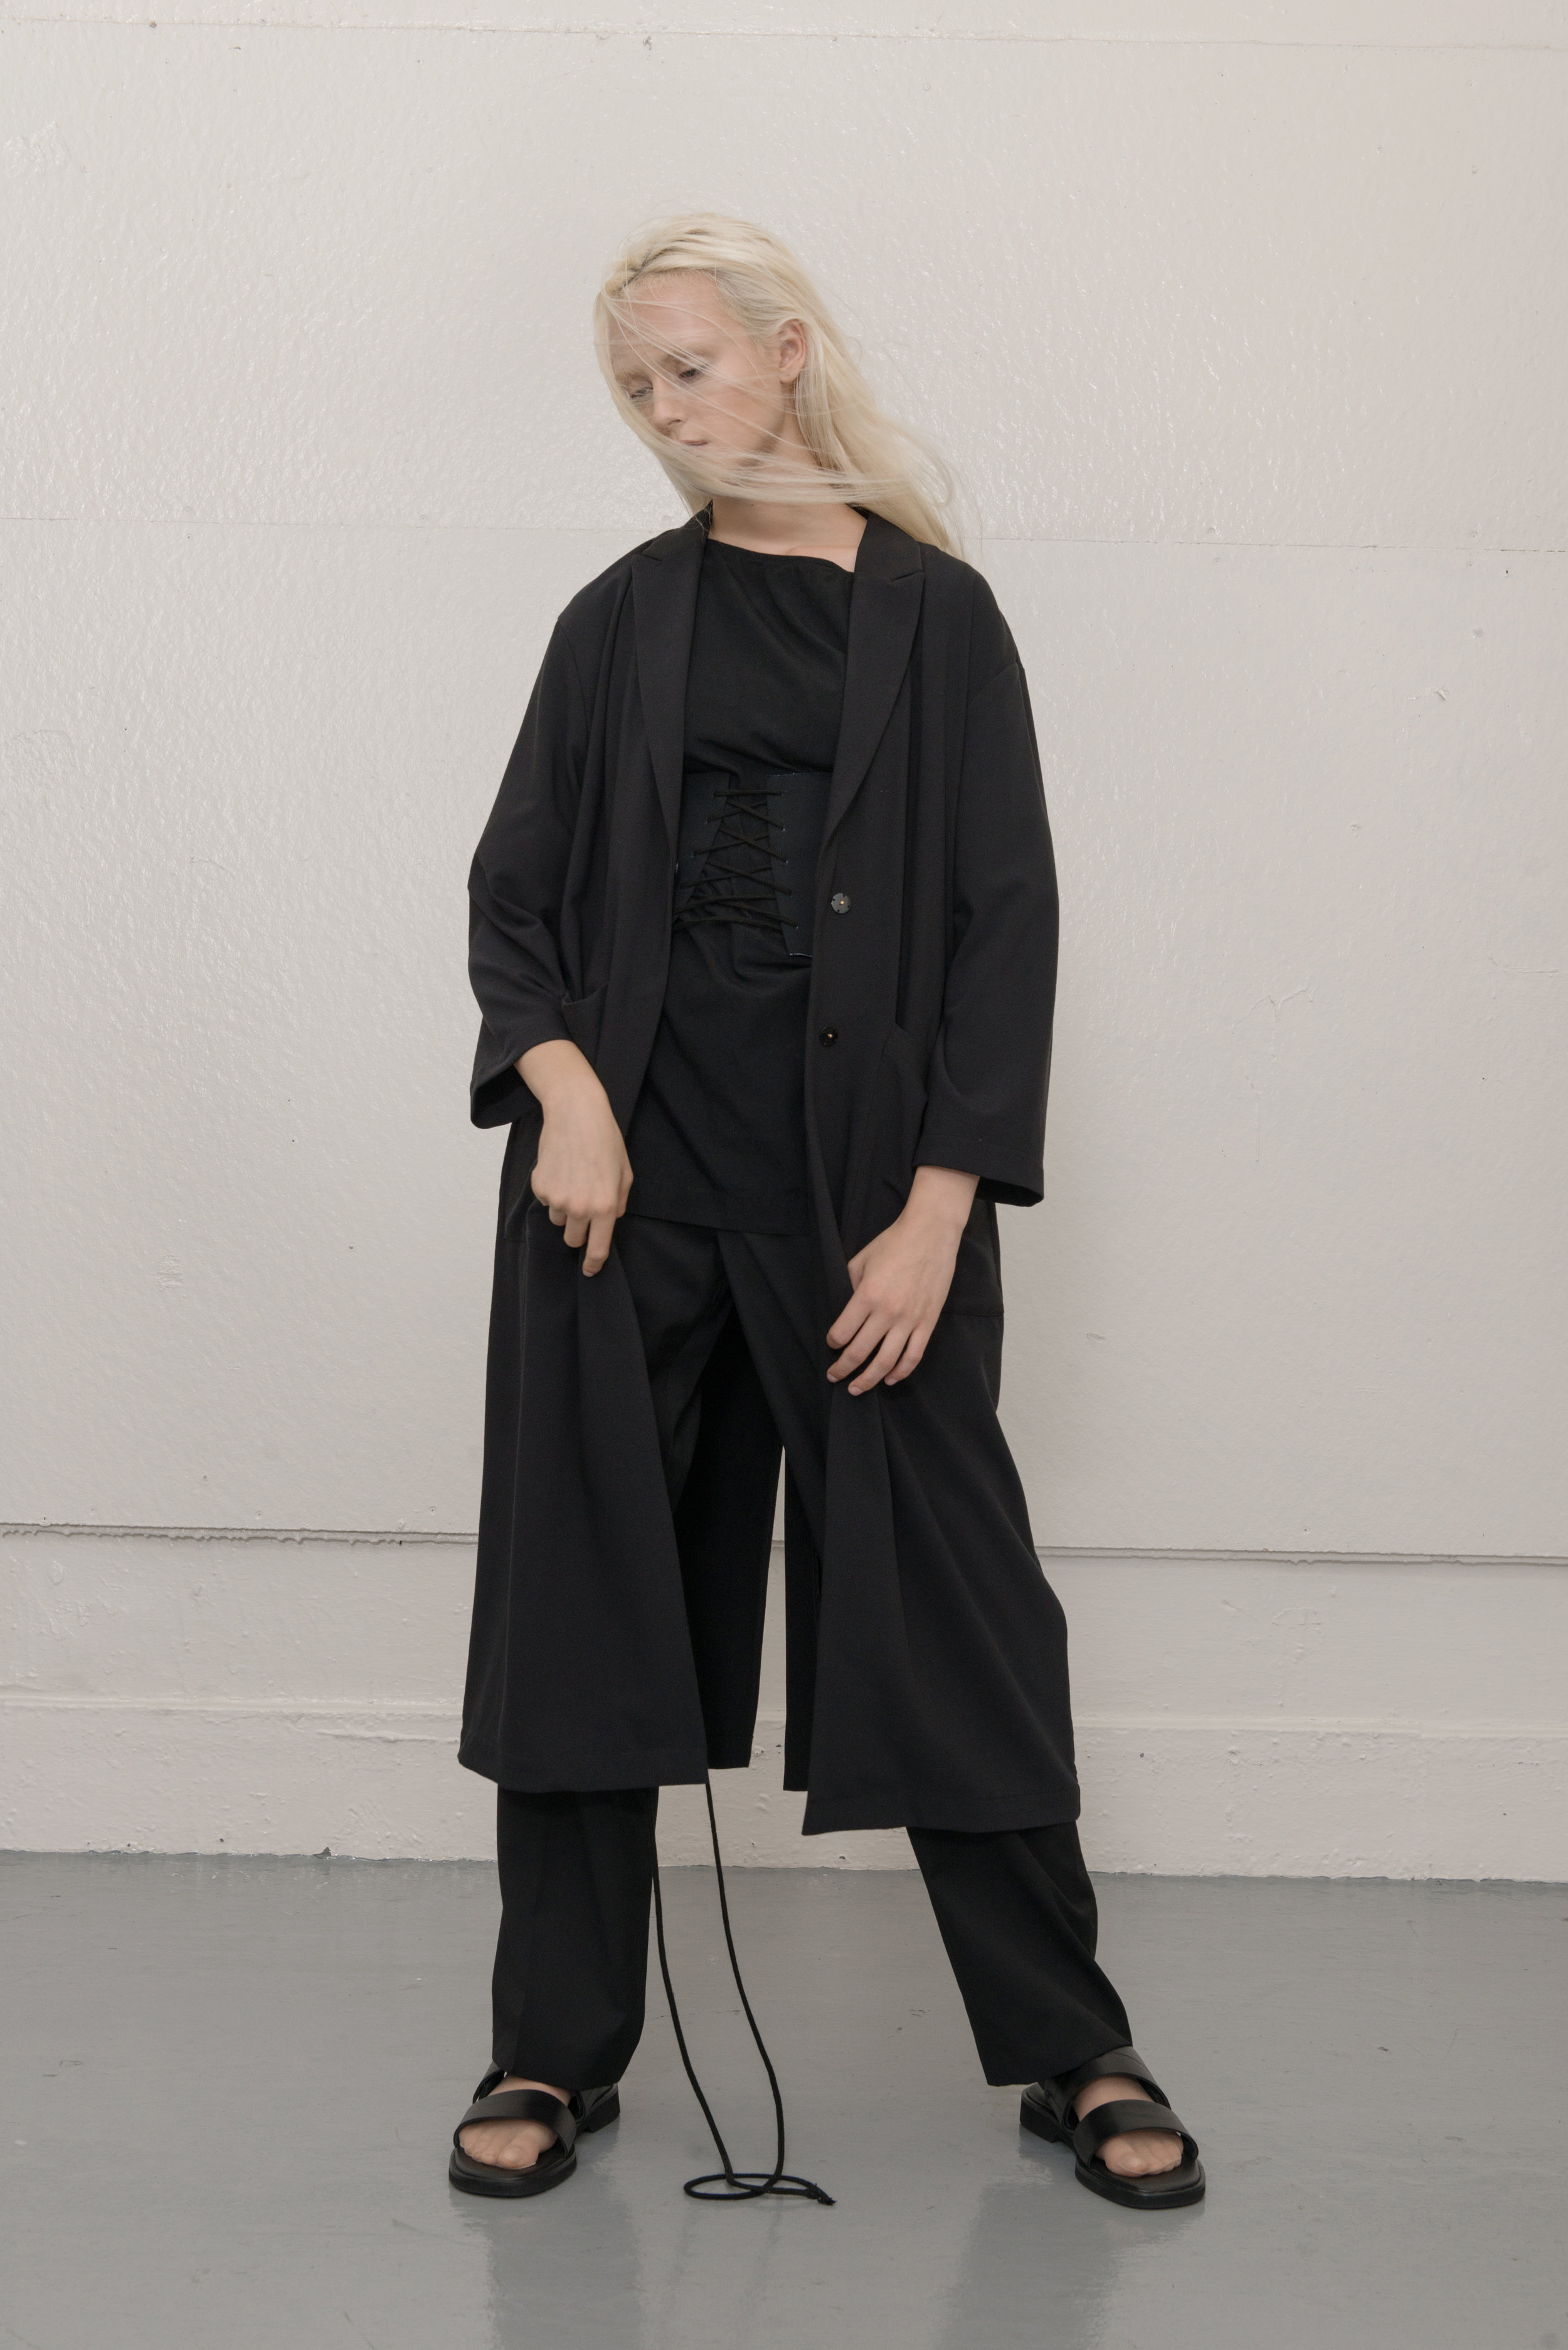 coat STYLIST'S OWN, top COS, pants THEORY, shoes COS